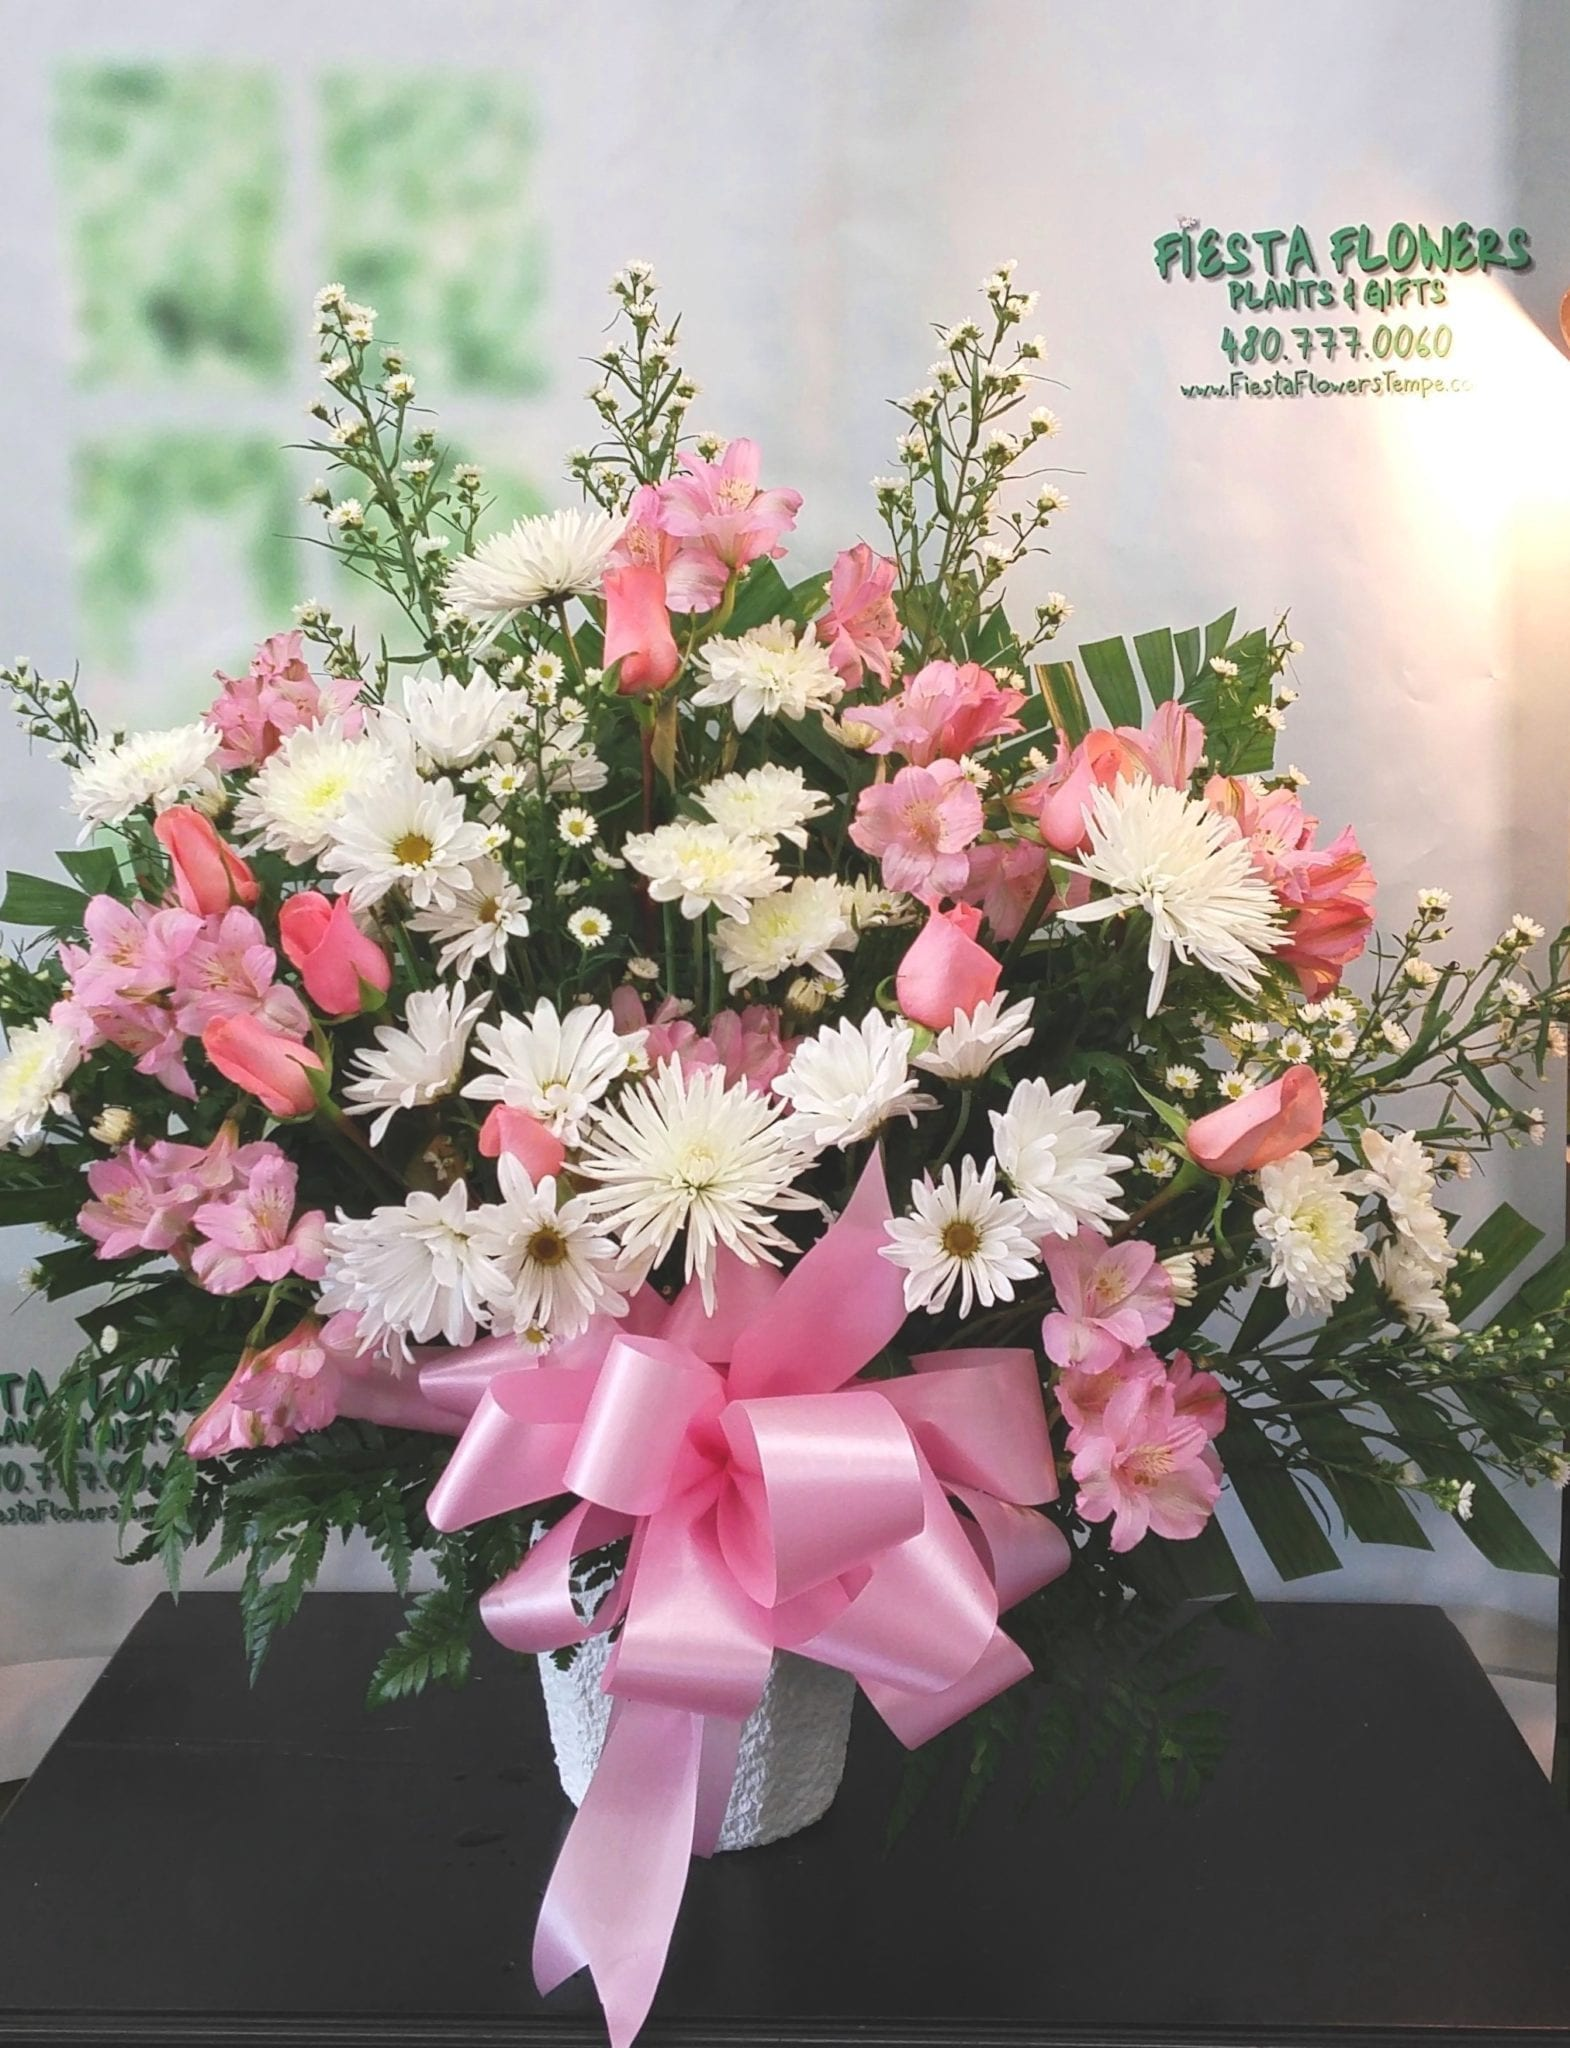 SAME DAY DELIVERY Pink and White Tribute Fiesta Flowers Plants & Gifts